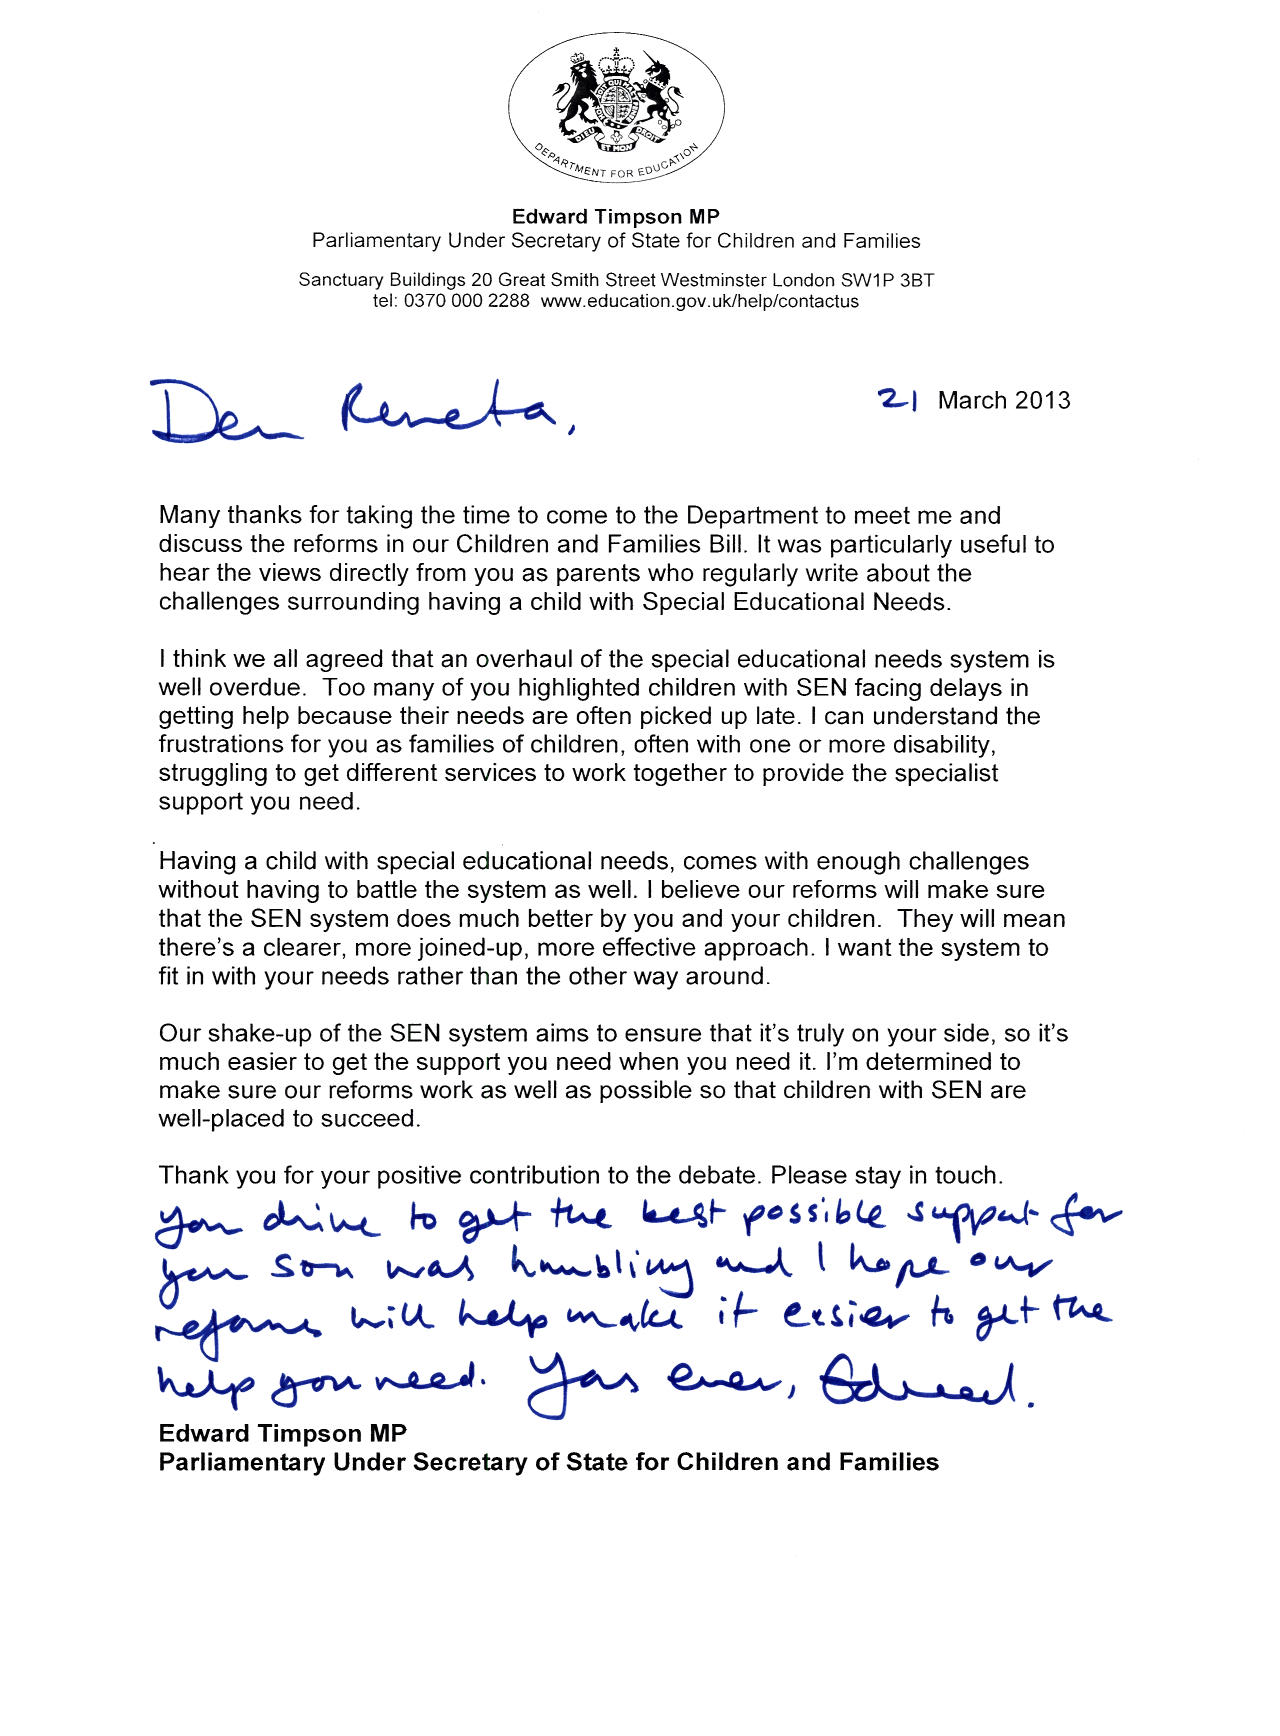 Edward Timpson letter to Renata Blower